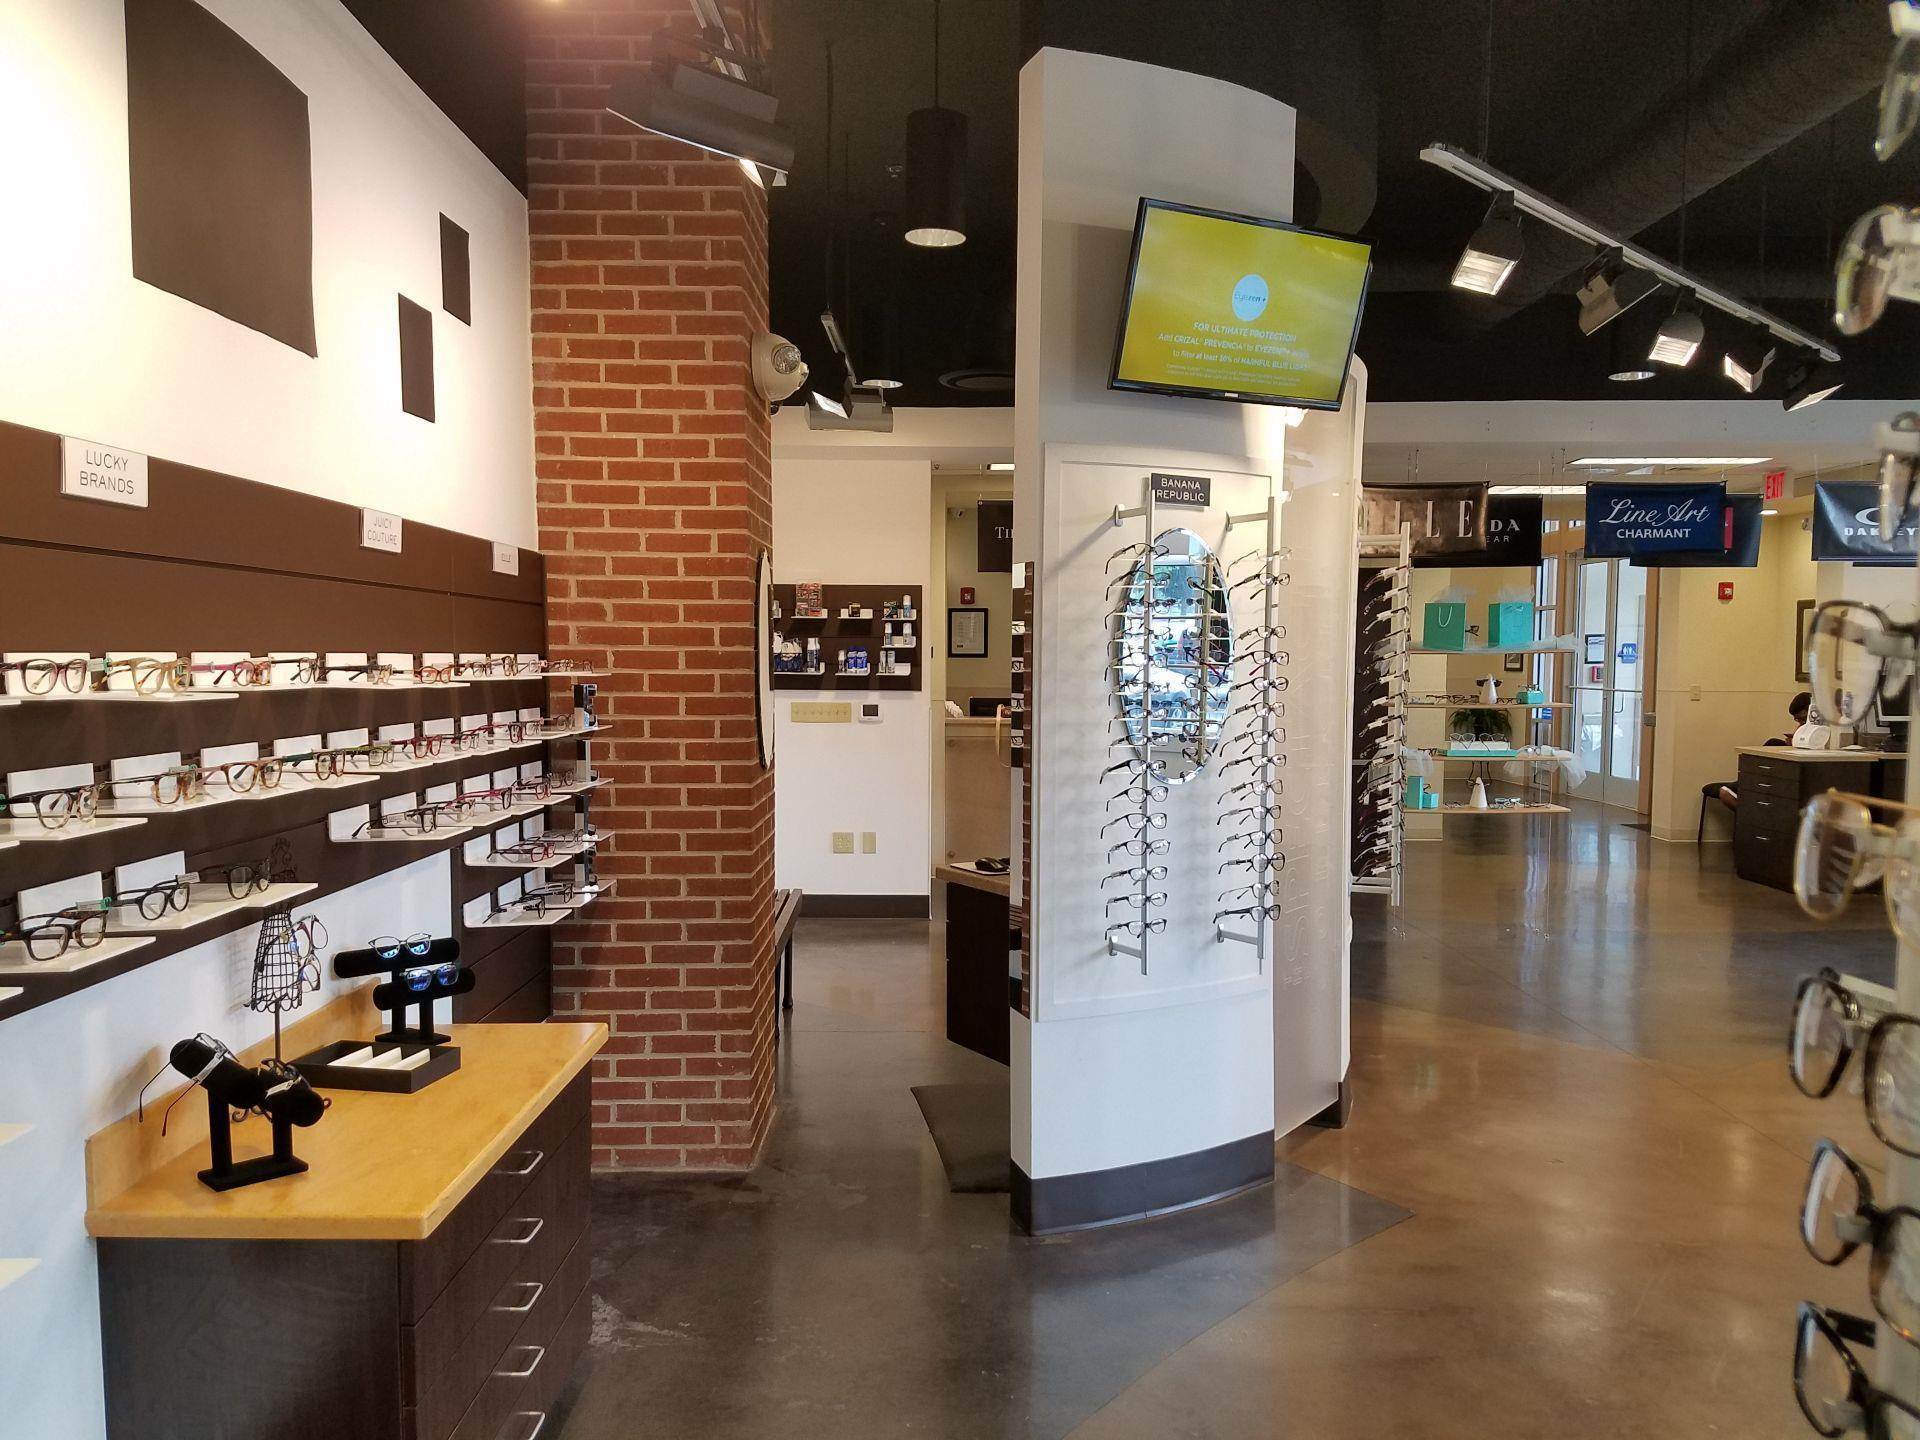 inside of store with glasses on display and flat screen on waalll